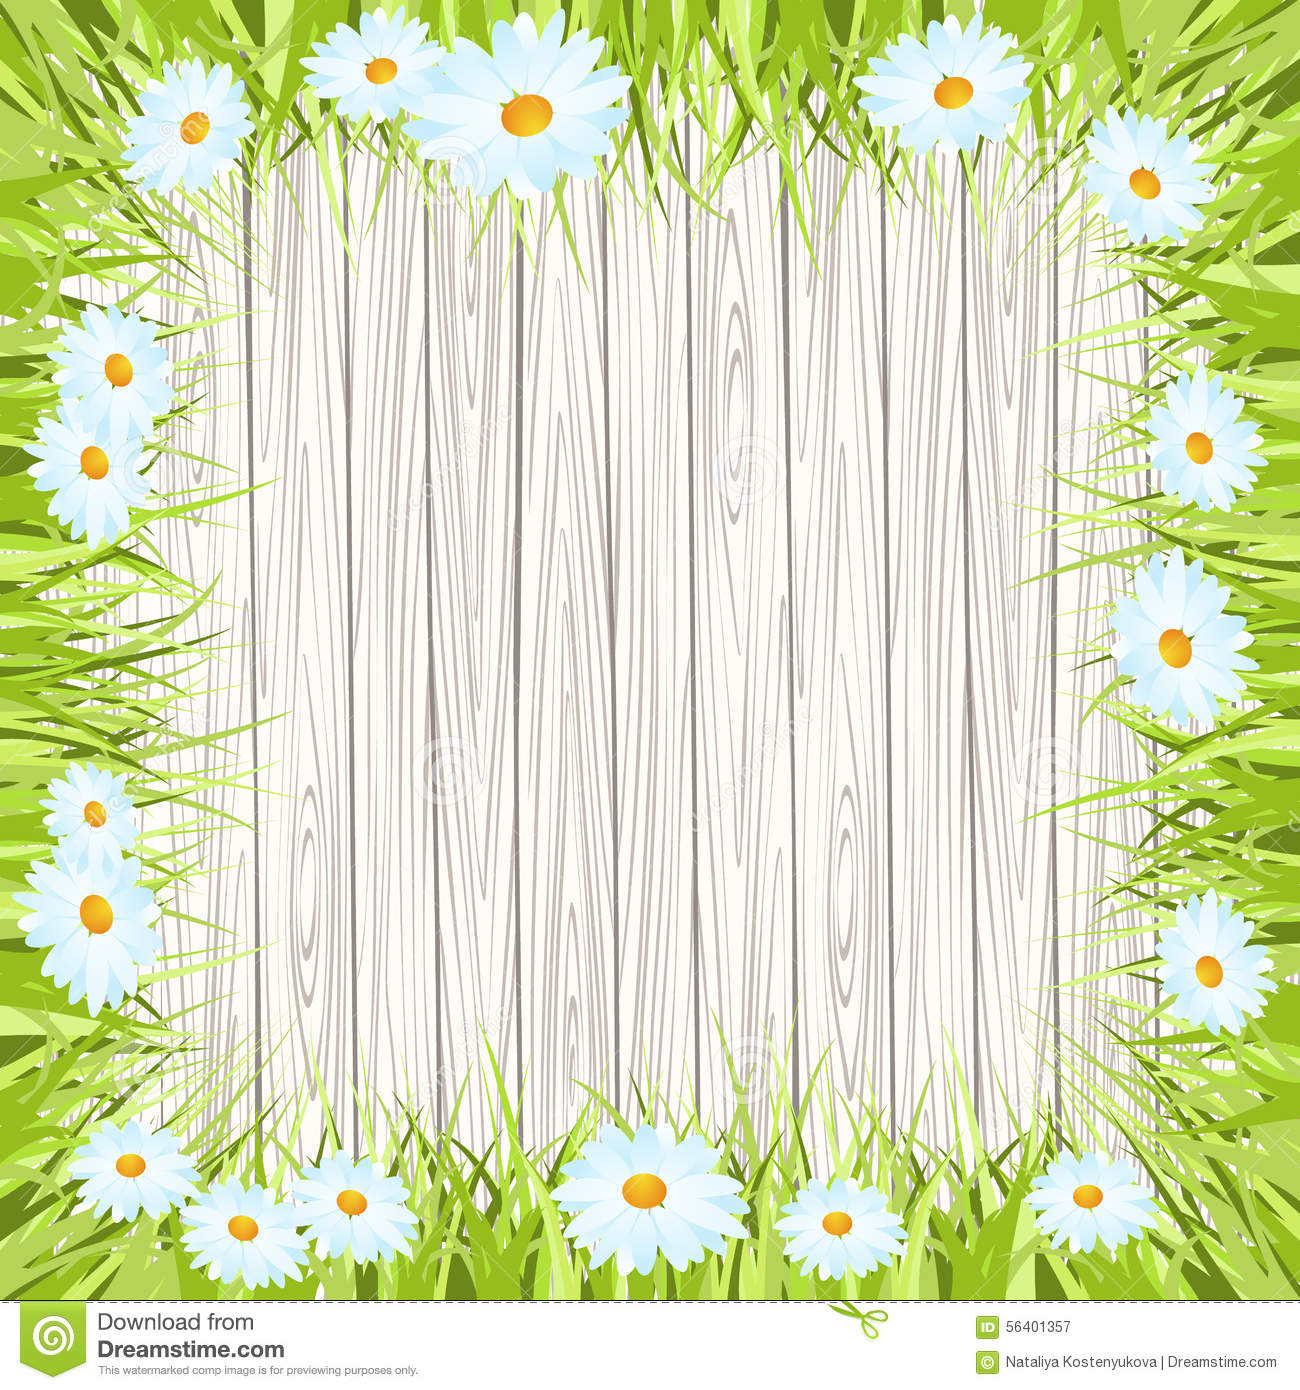 Spring Flower With Green Background Vector 02 Free Download: Spring Vector Background With Wooden Sign , Grass Stock